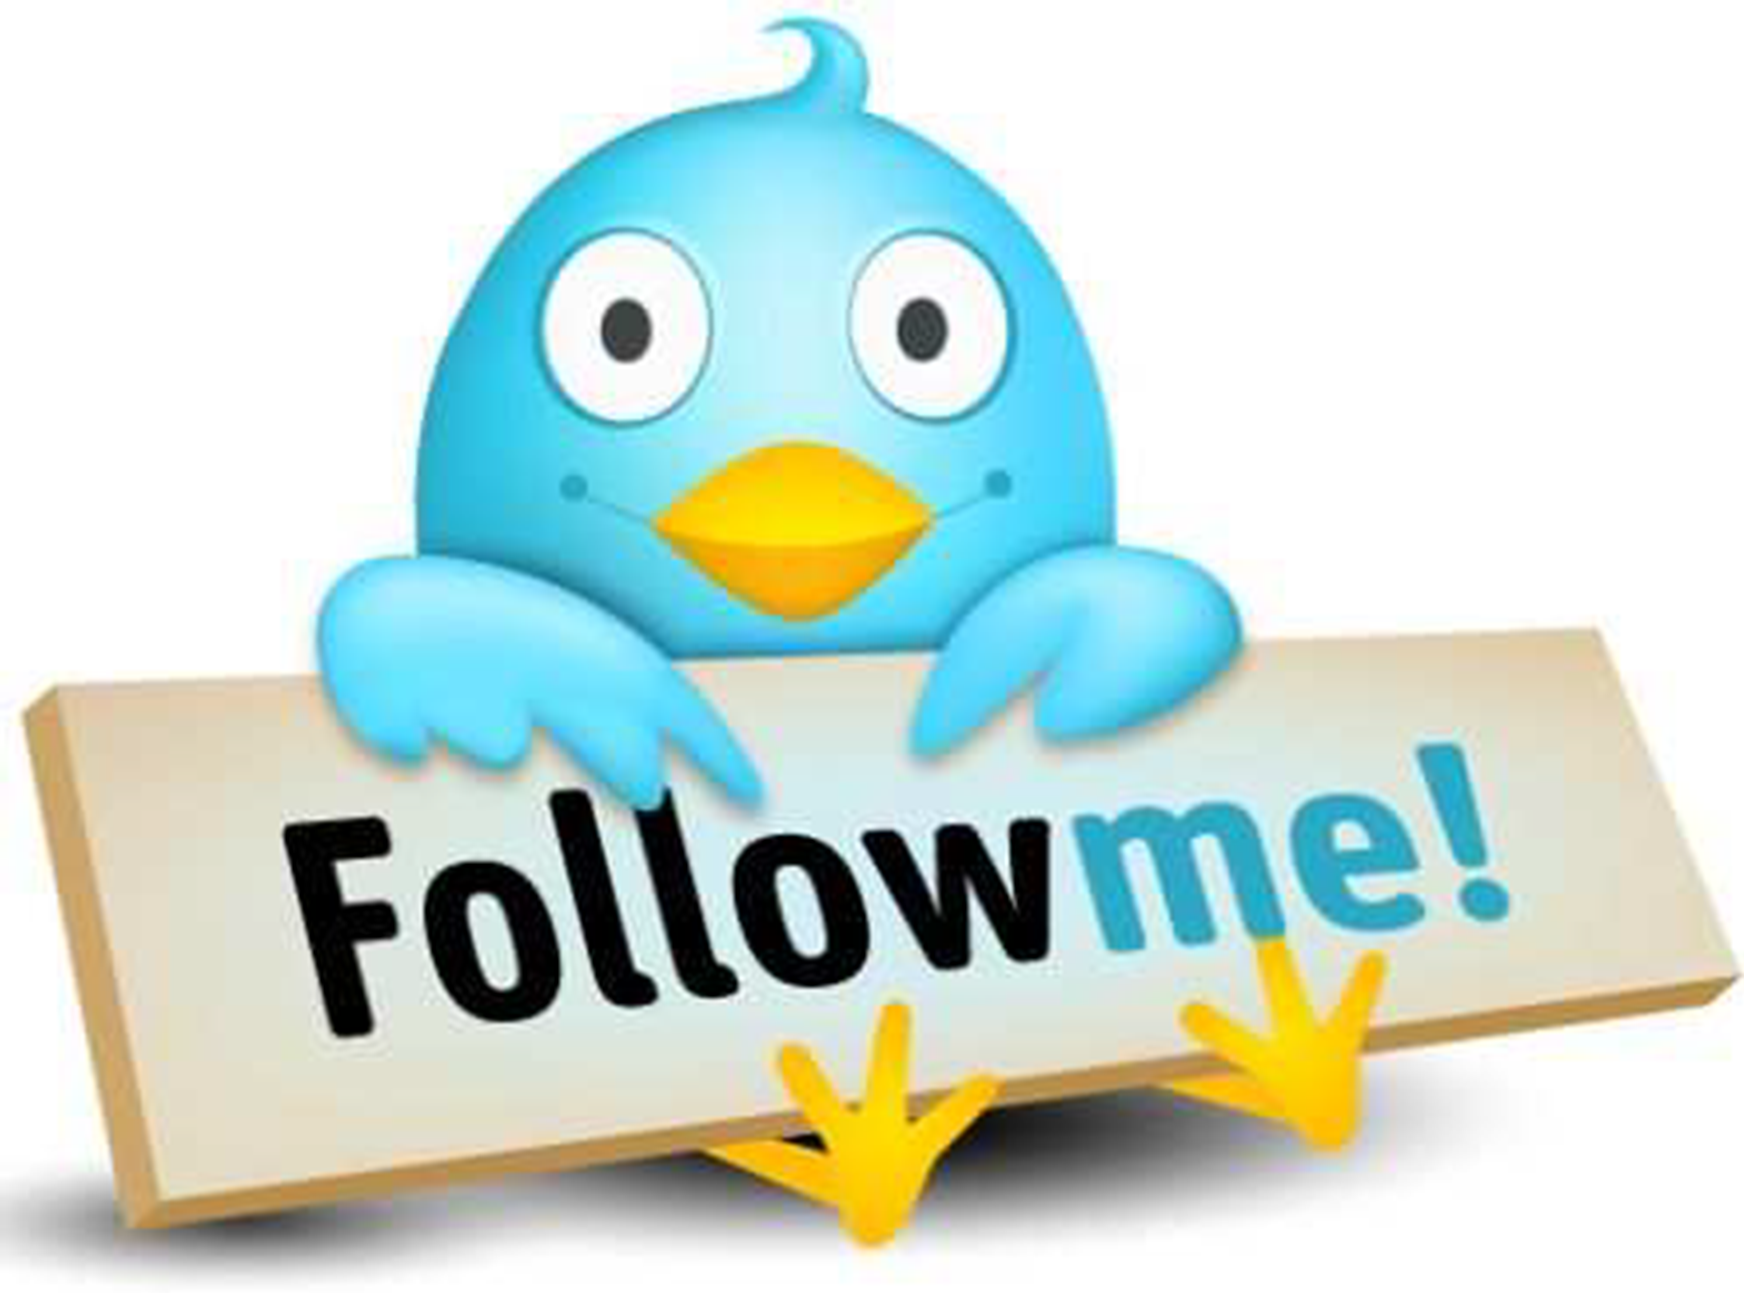 Follow me at twitter.com/GirlinTherapy